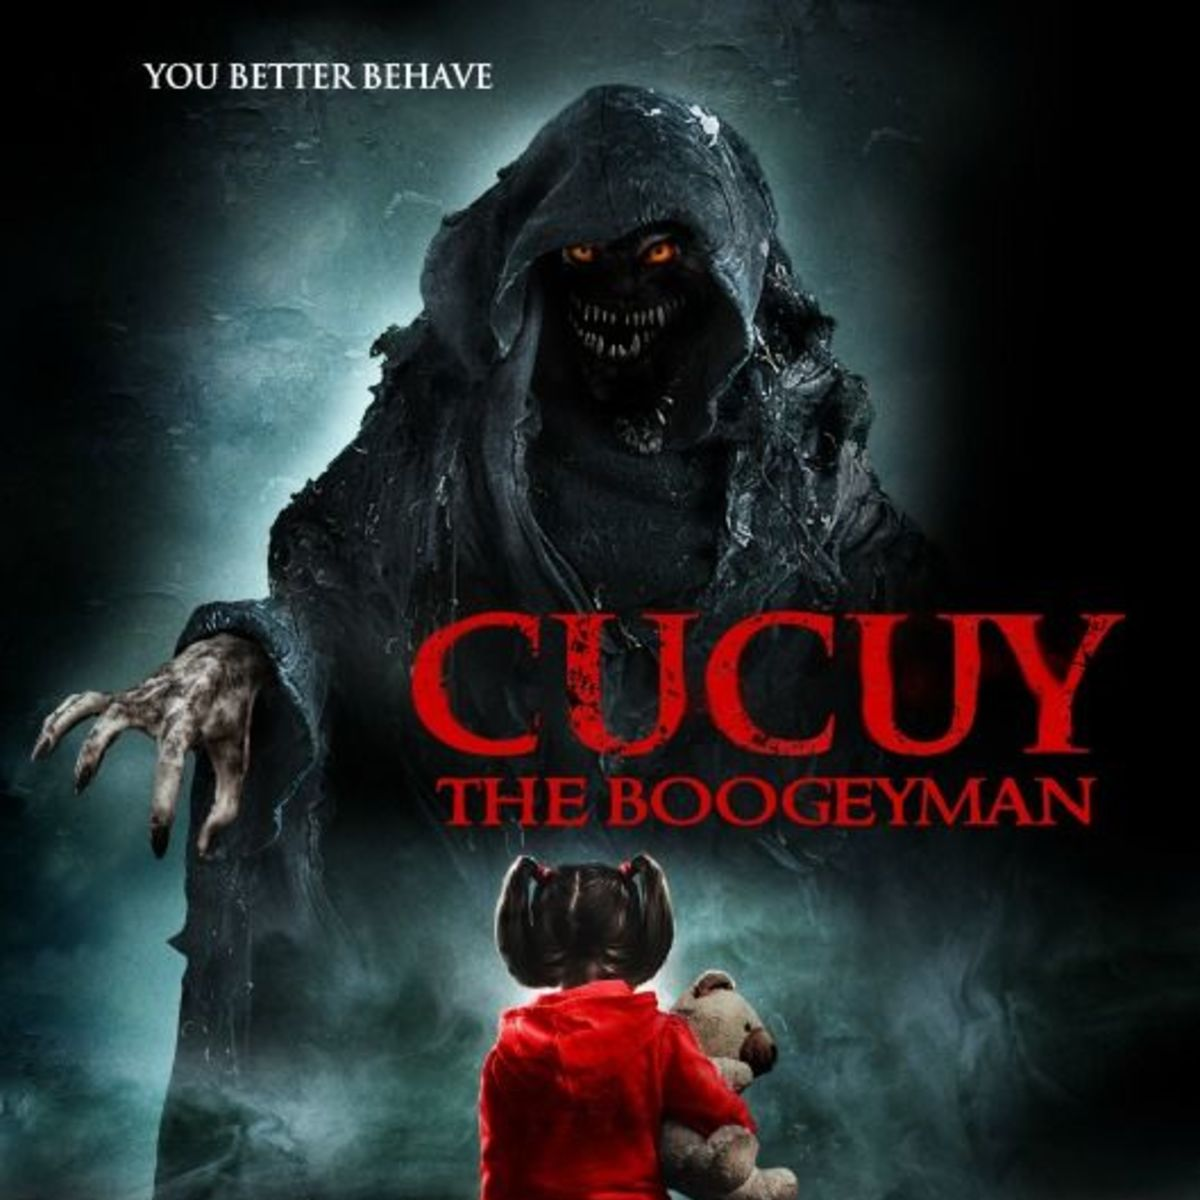 Exclusive Cucuy The Boogeyman Drops First Legend Twisting Trailer